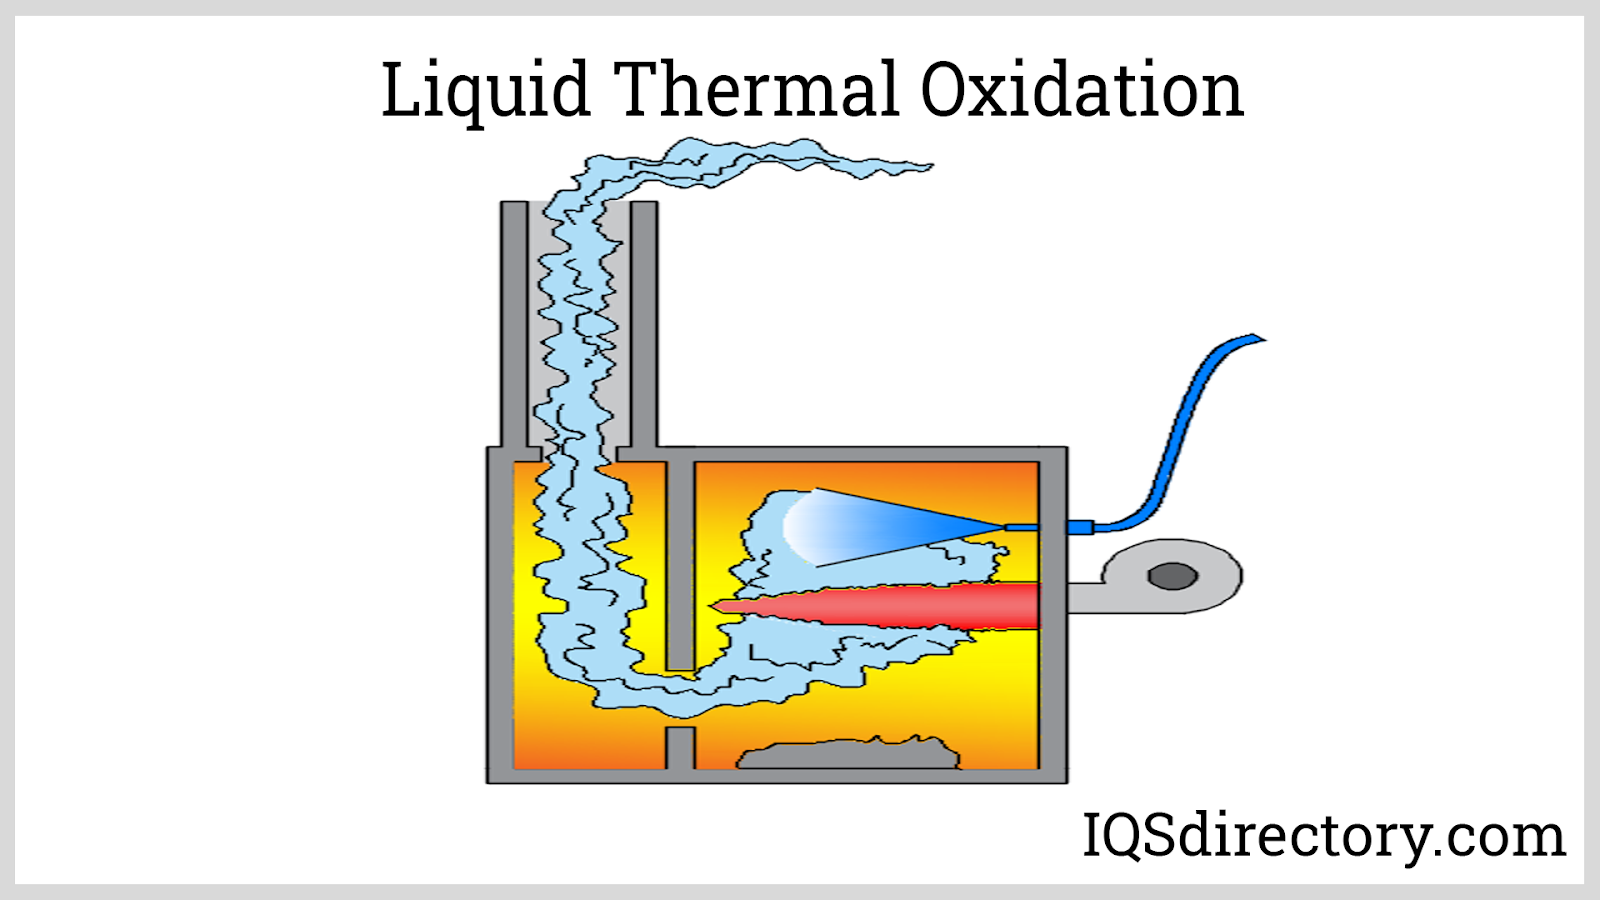 Liquid Thermal Oxidation